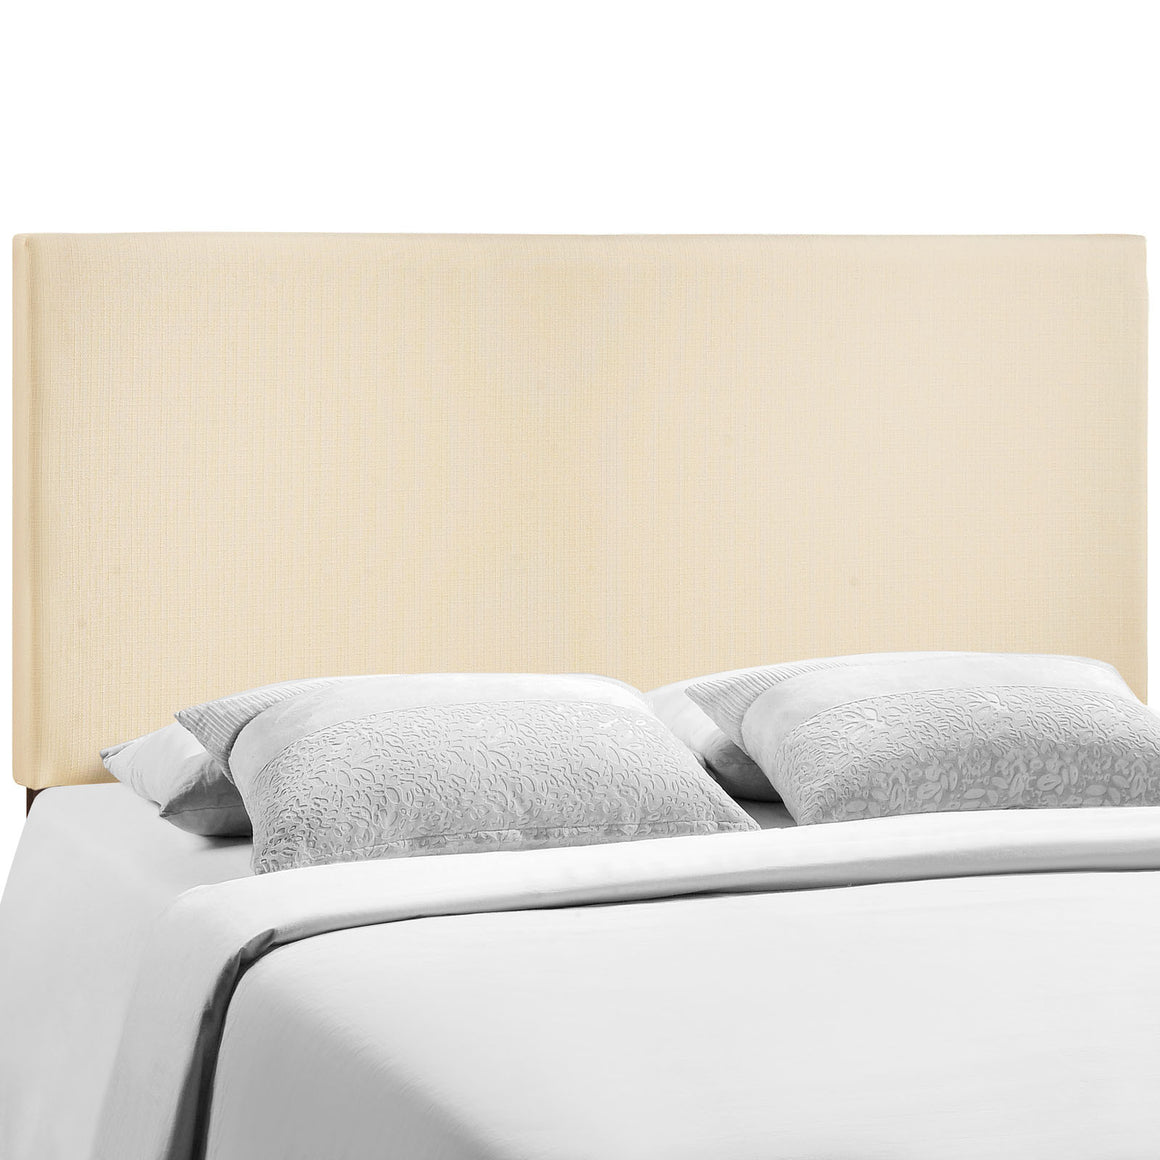 Region King Upholstered Headboard in Ivory